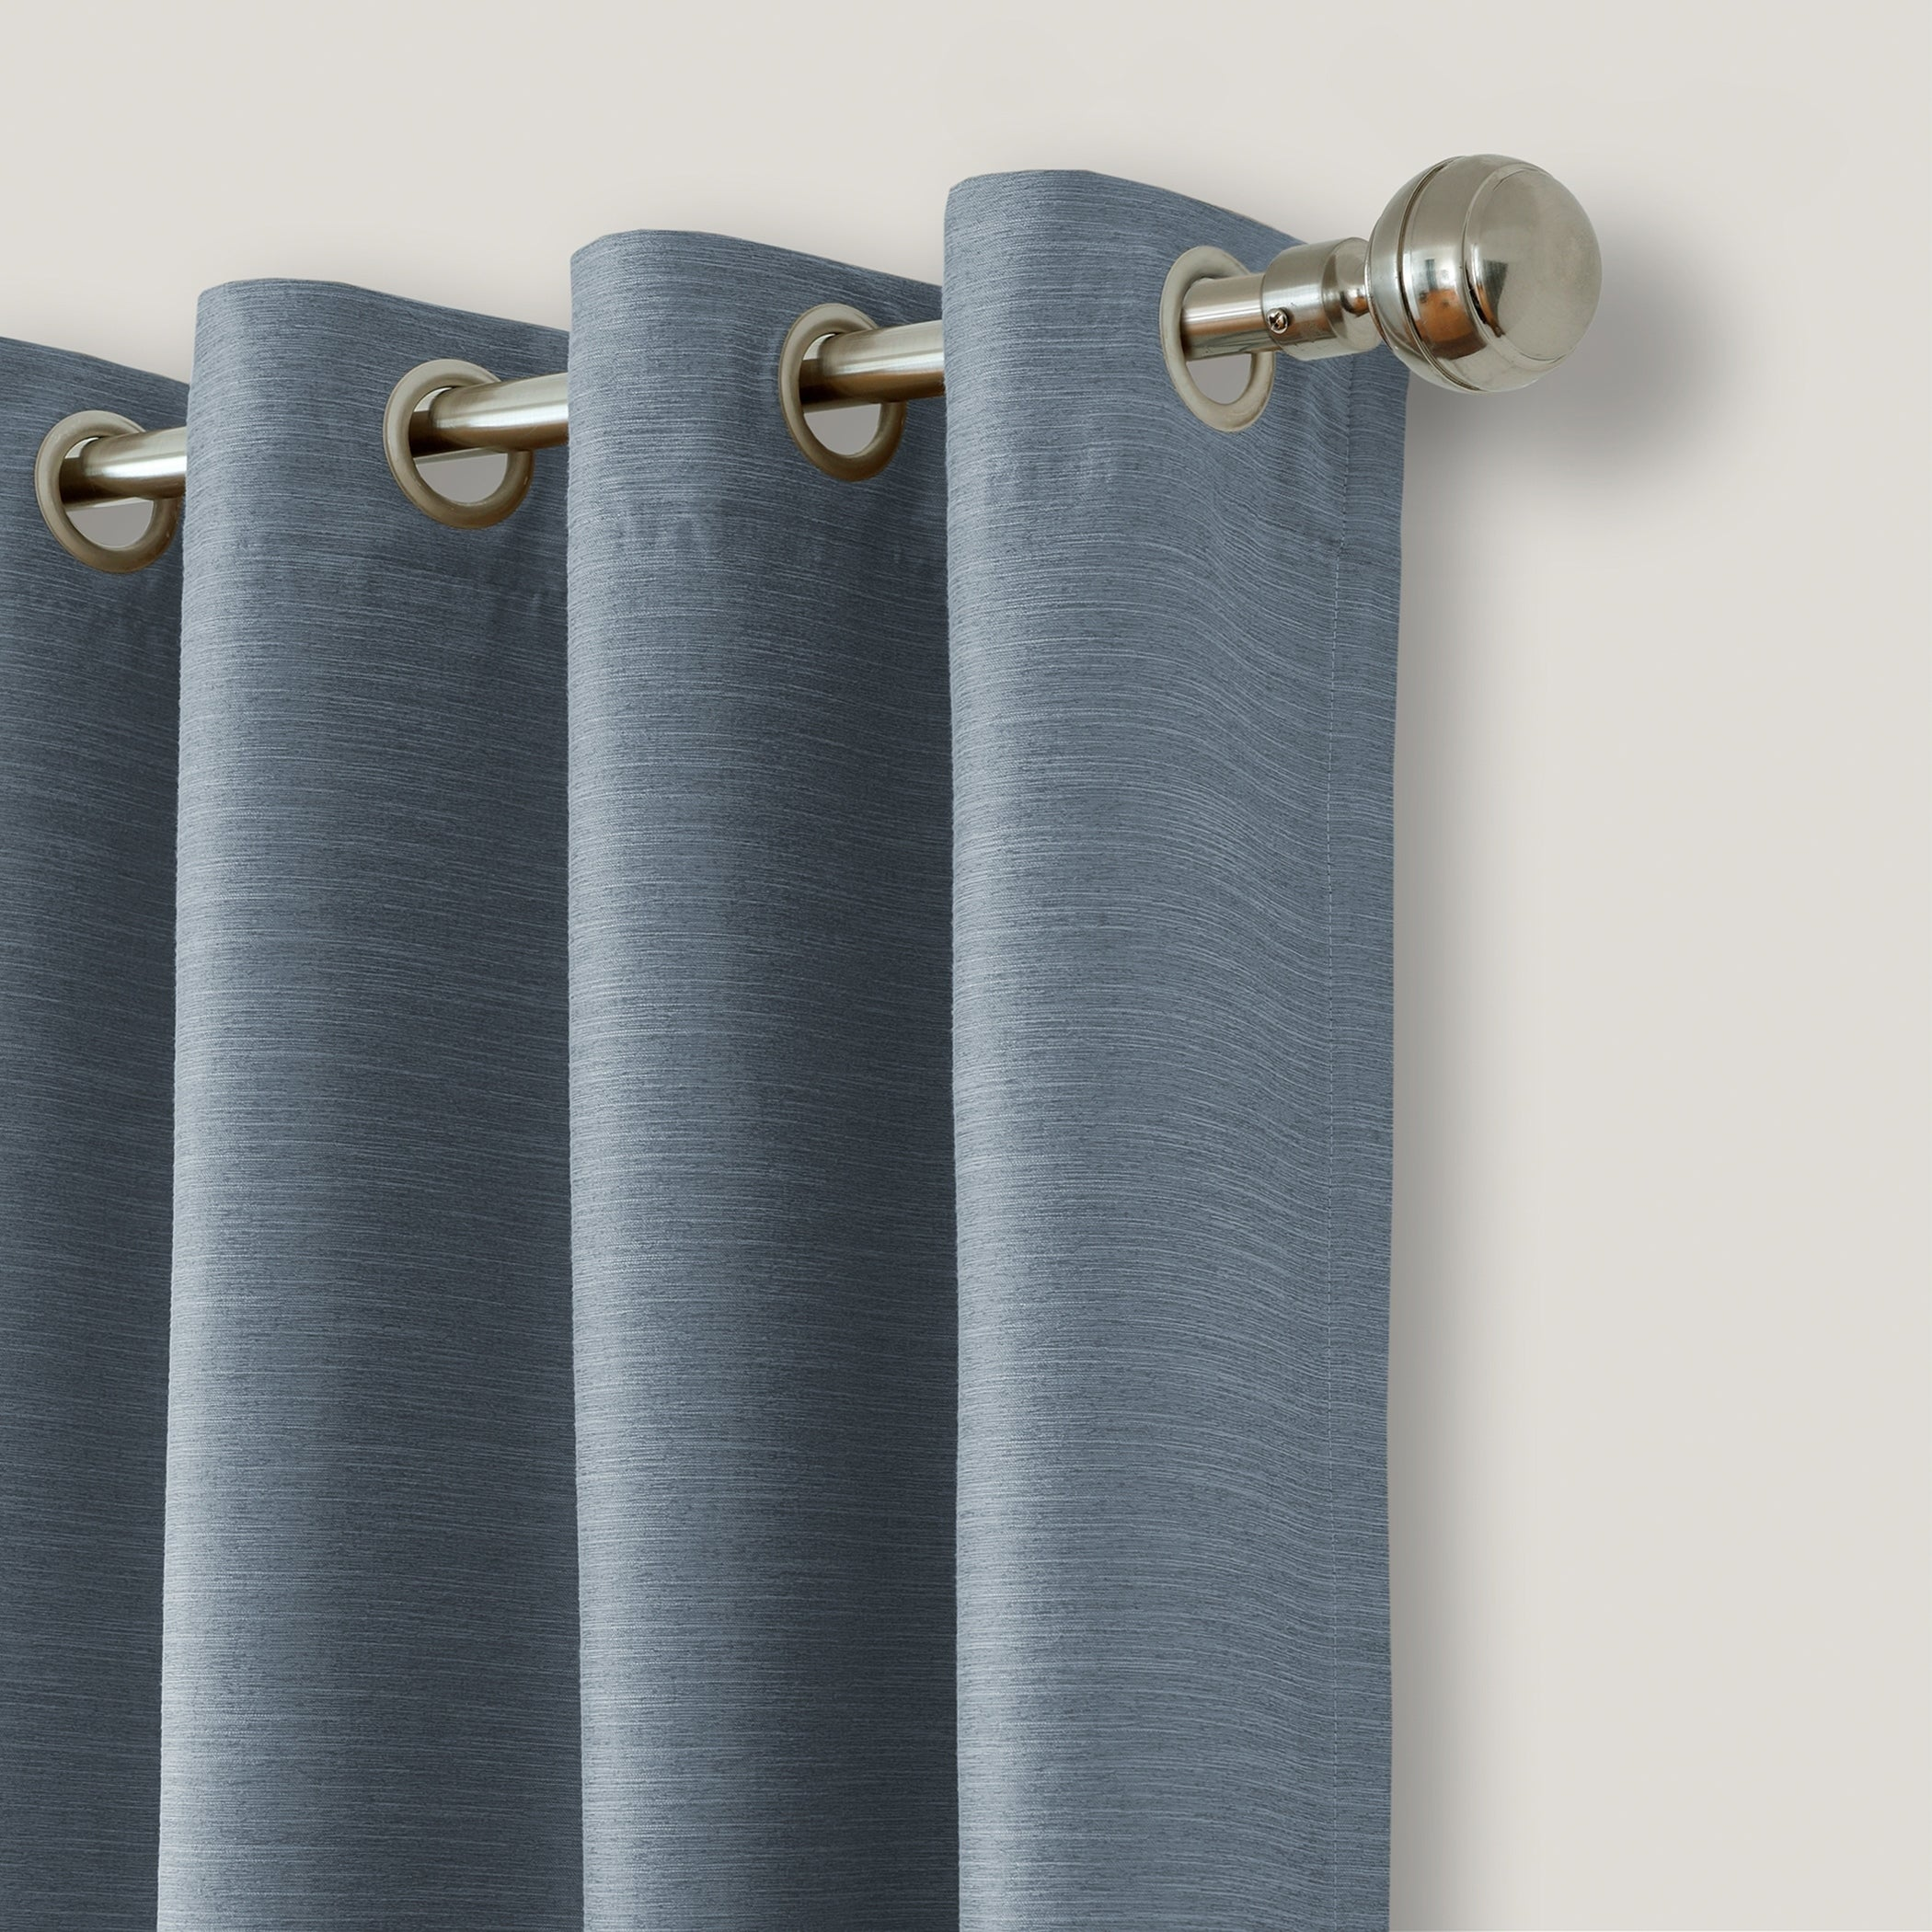 sheer mix panel drapes heathered x set garden product blackout denim look aurora curtain linen match with home muji free today overstock and pair grommet piece shipping